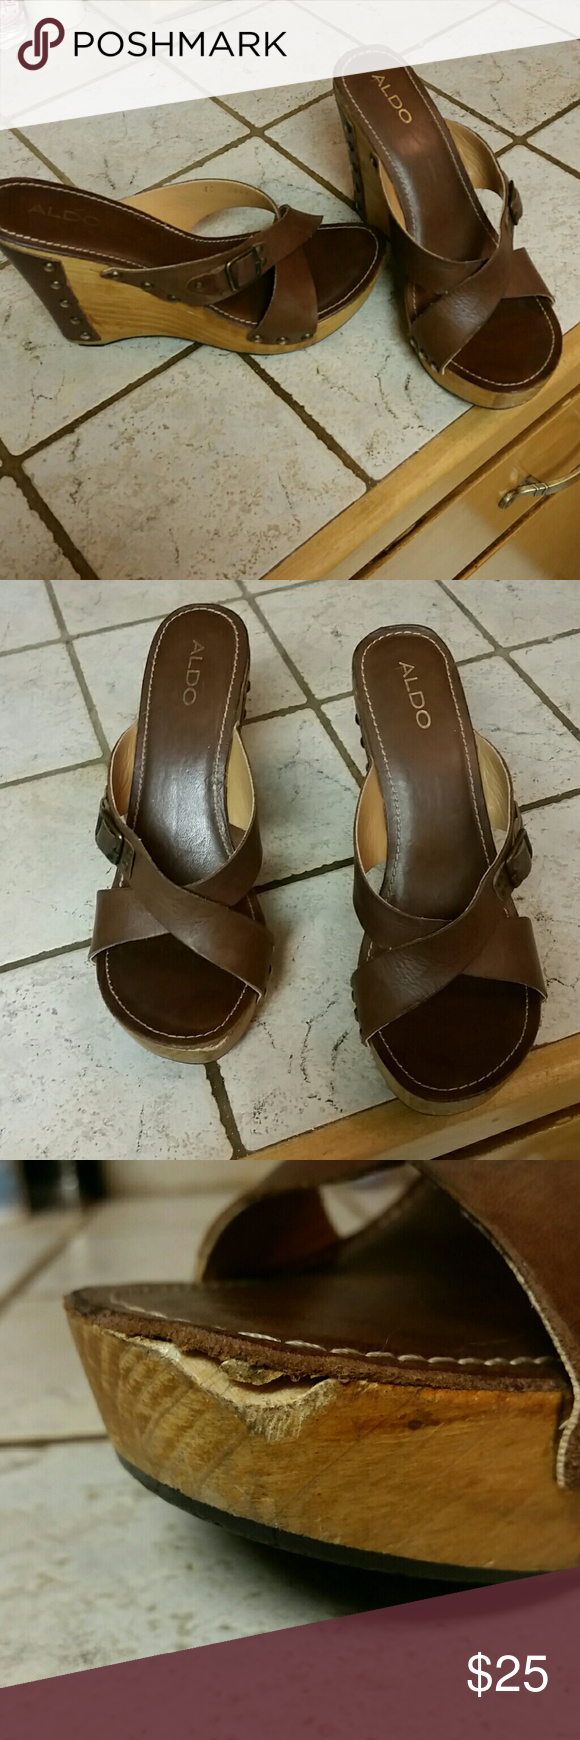 Aldo Wedges 8.5 Good condition except a chip on the front of right heel. Size 8.5 Aldo Shoes Wedges